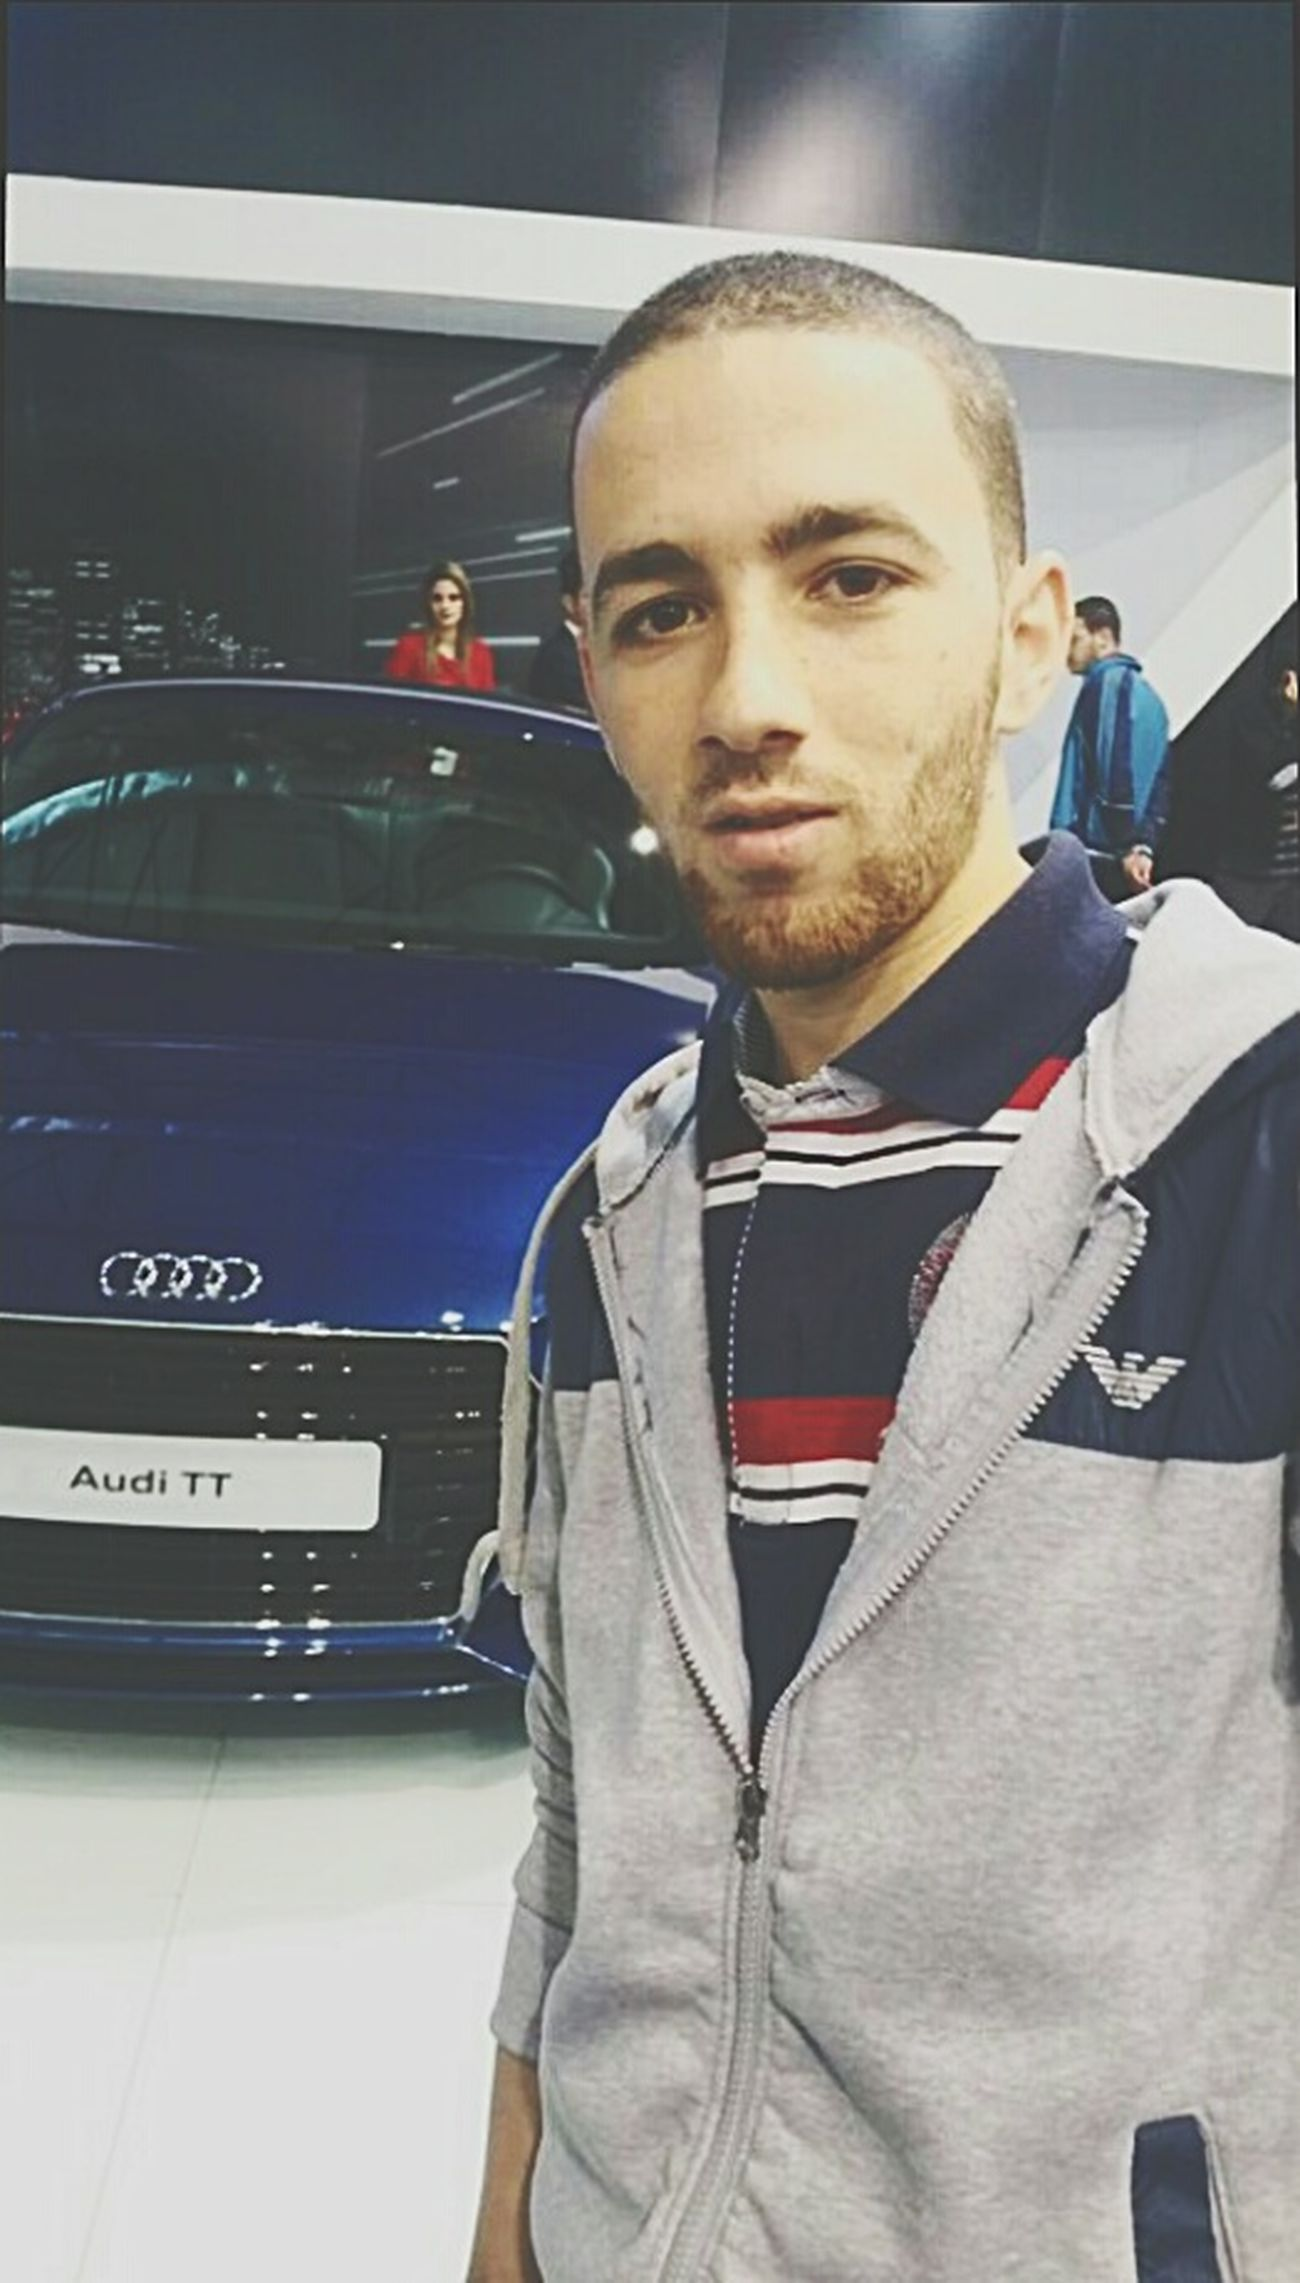 Yunes Bedrine My Love ♡ Fiance❤️ CarShow Himm <3  Hobi People Photography Audi ♡ Street Photography Blue